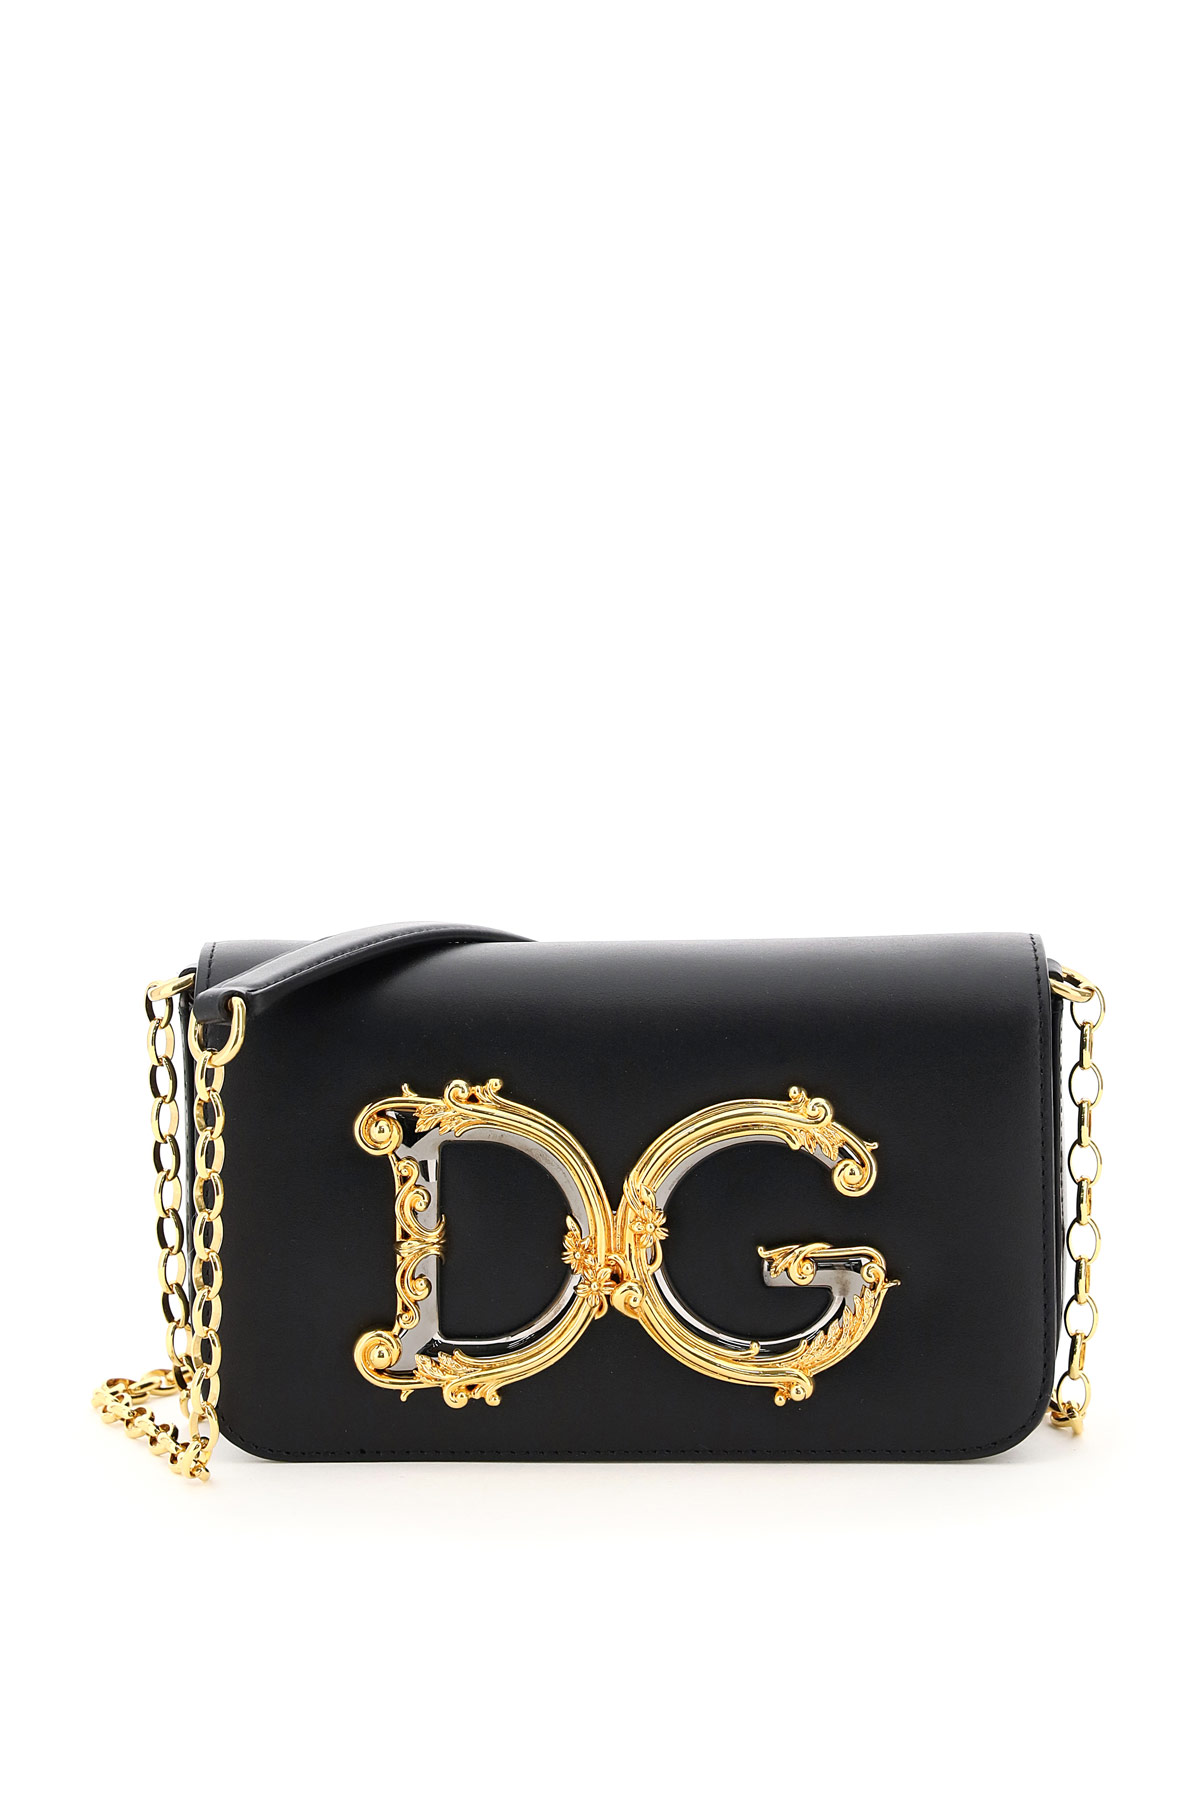 DOLCE & GABBANA DG GIRL MINI BAG BAROCCO OS Black Leather